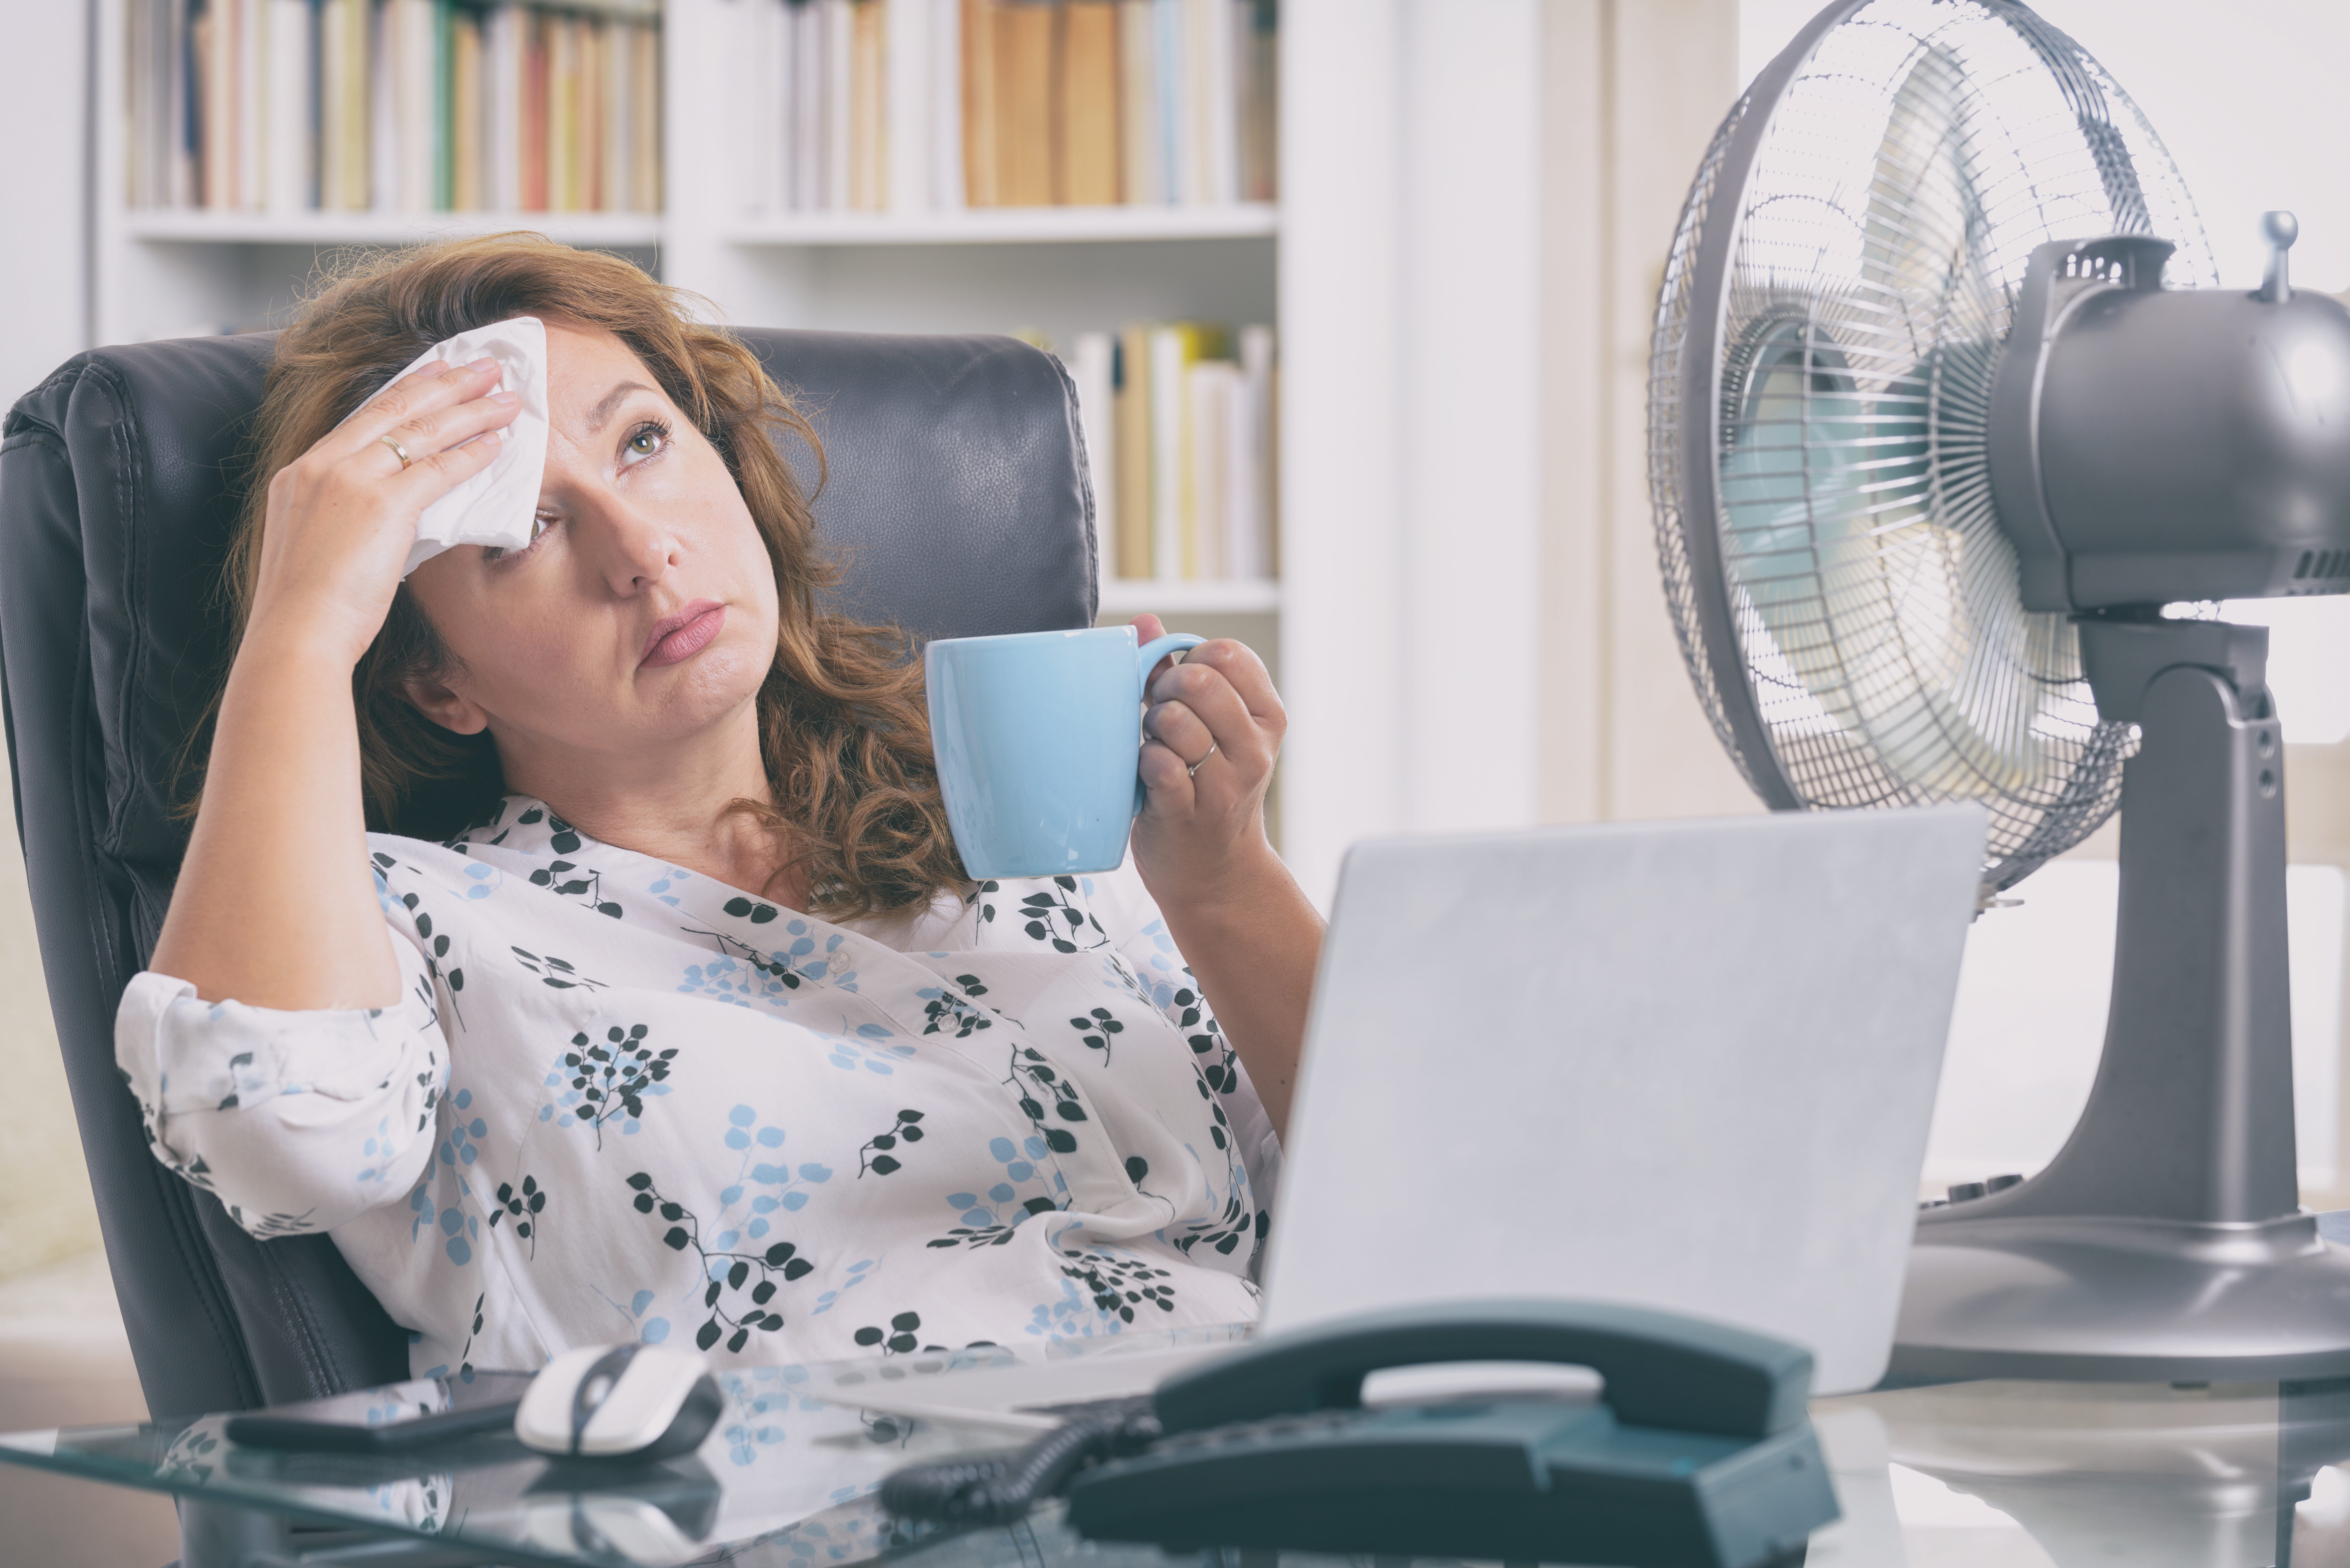 Ideal Office Temperatures for Productivity